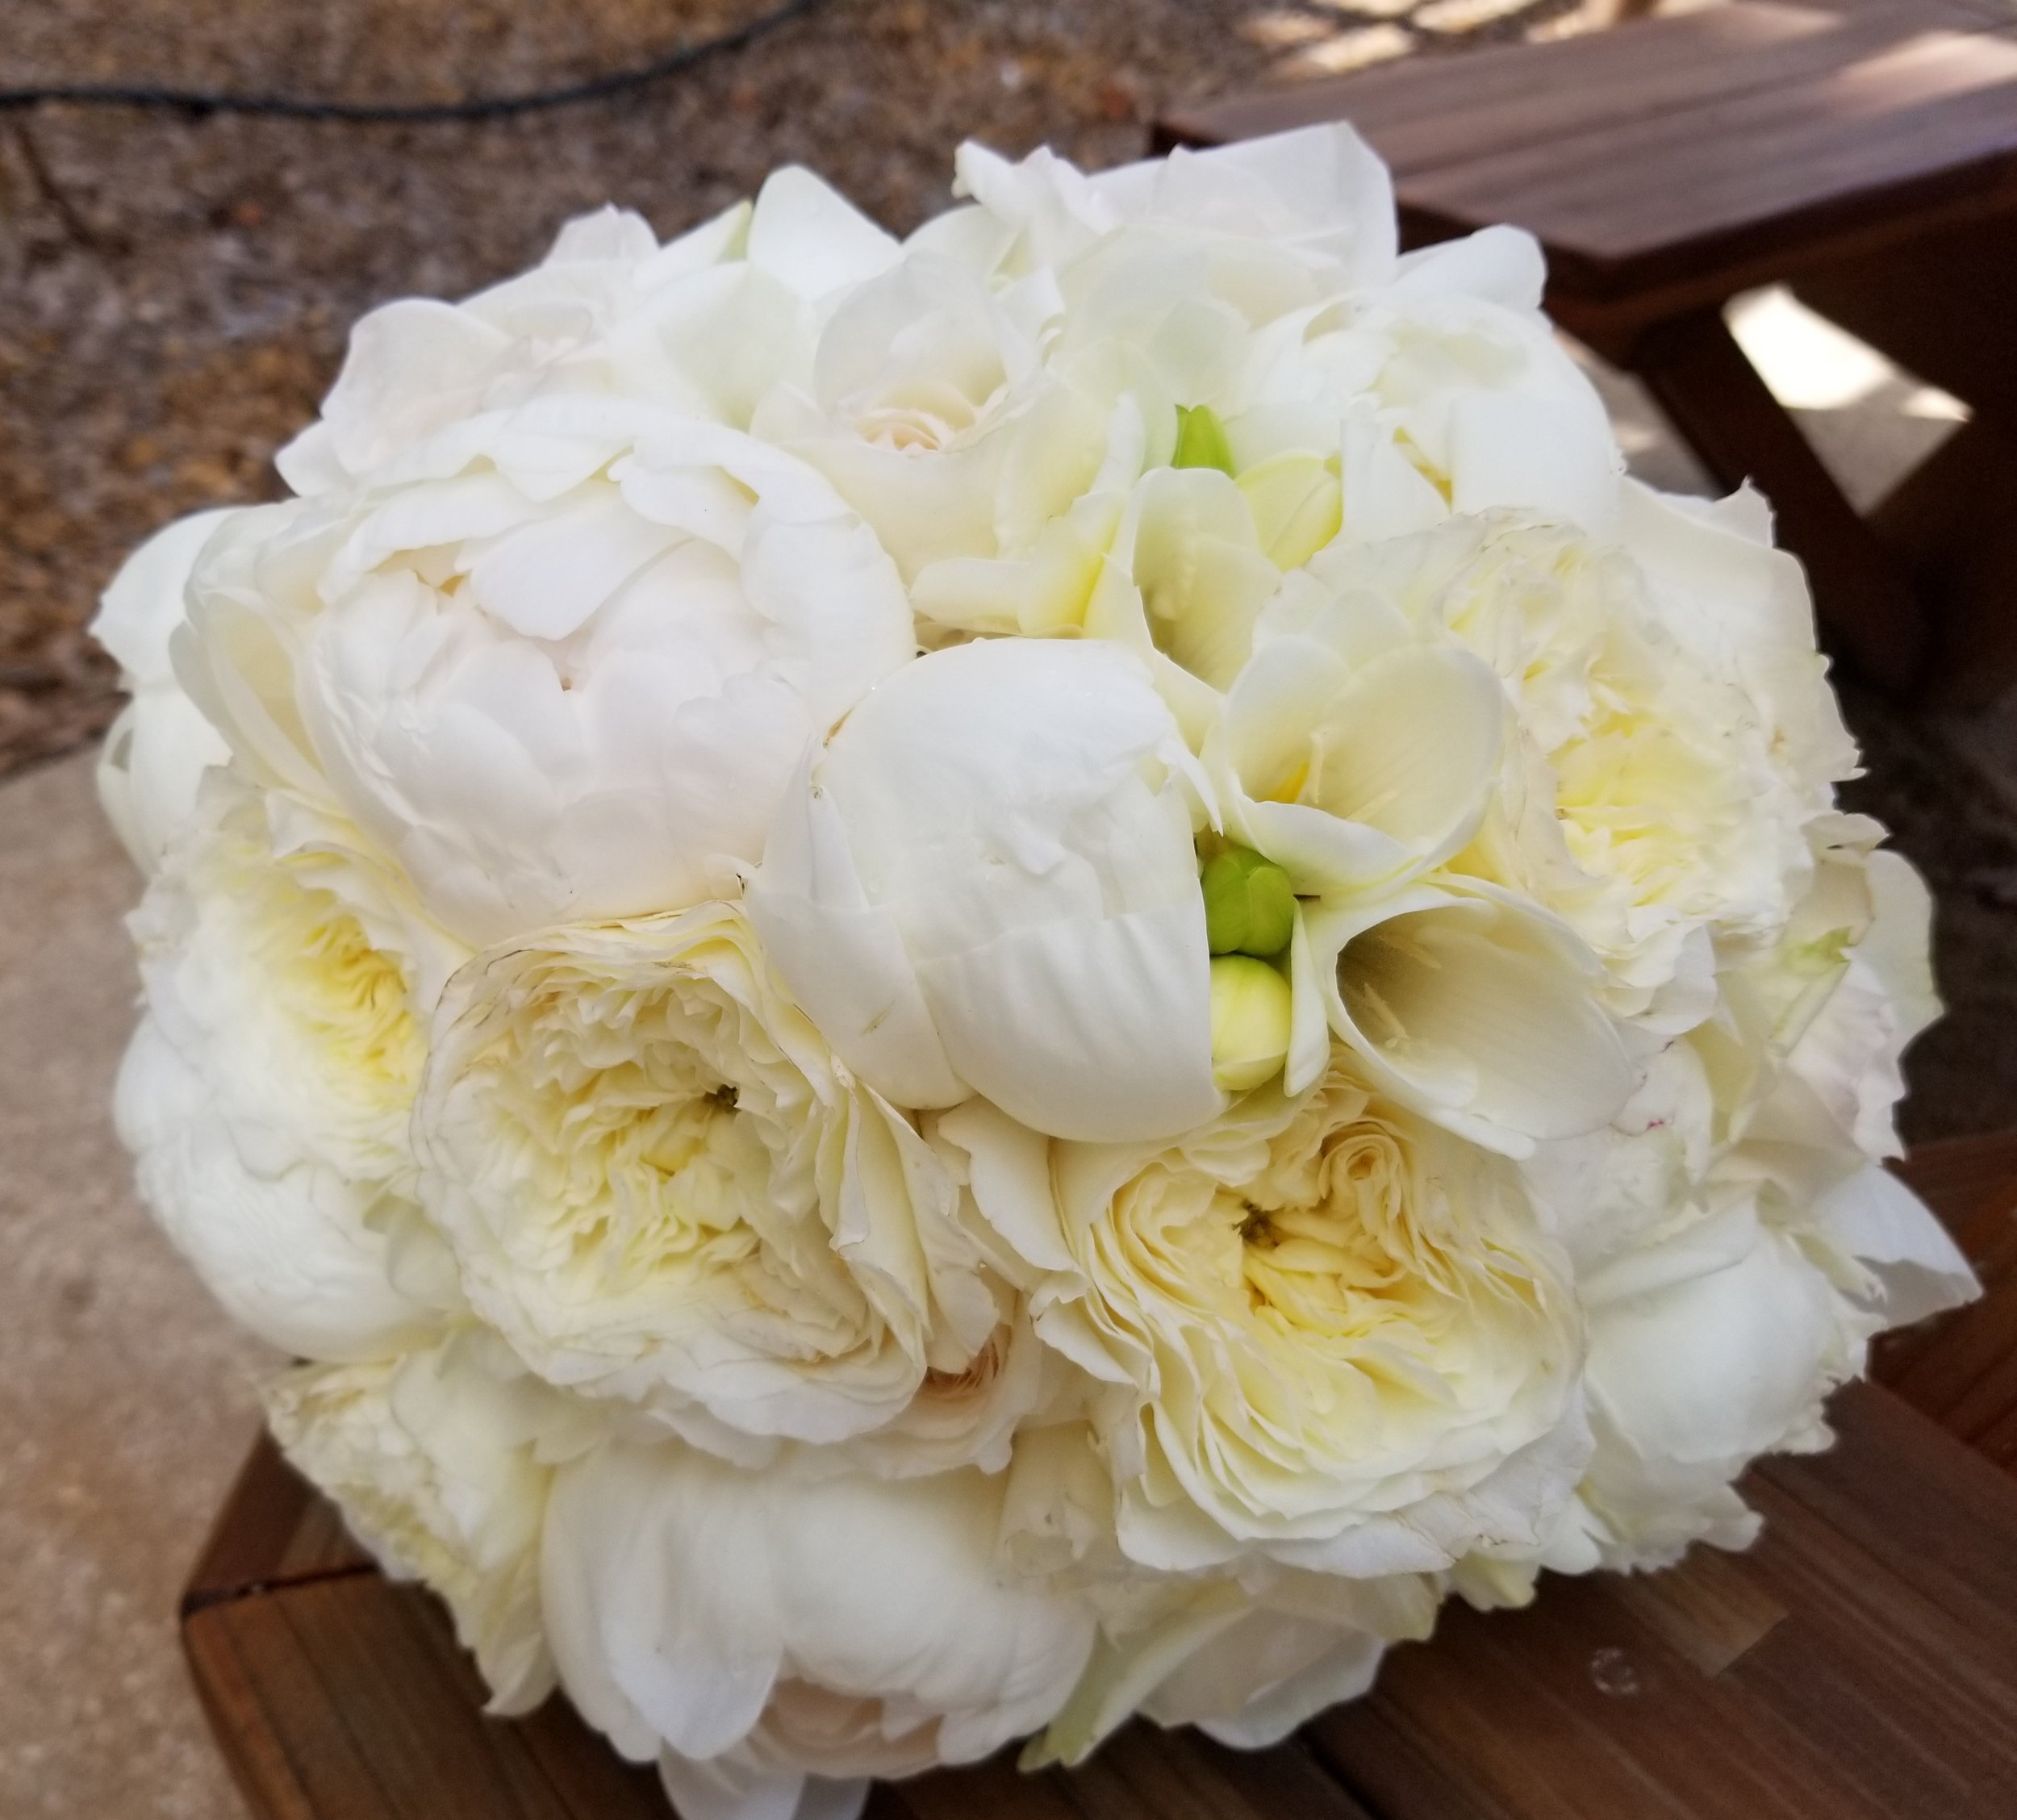 Pure white bridal bouquet featuring peonies and freesia.